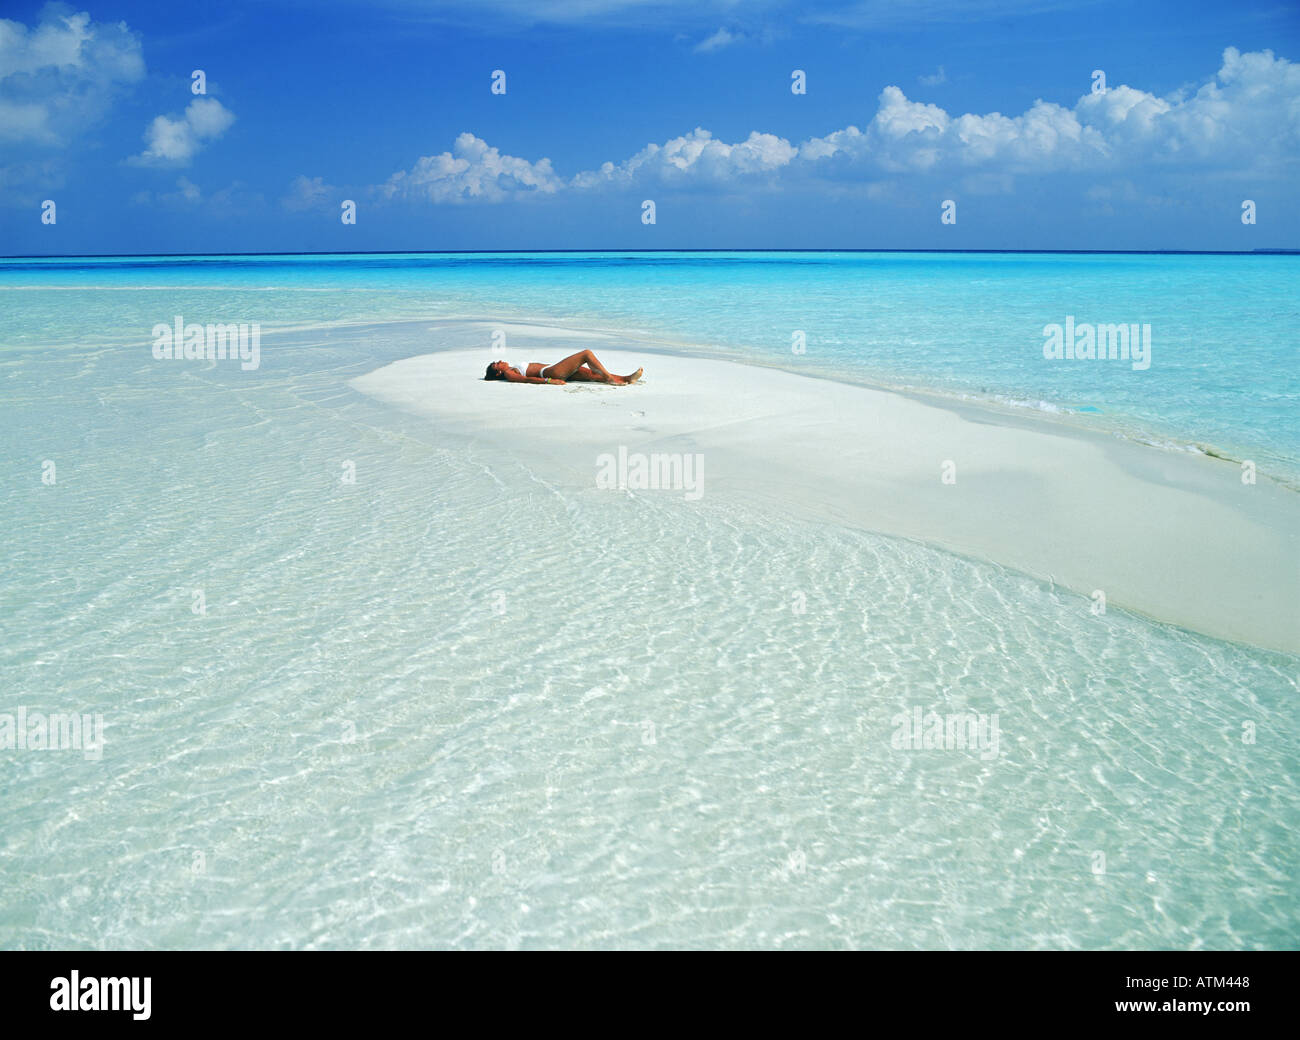 Woman resting on sandbar during holidays to favorite island paradise - Stock Image